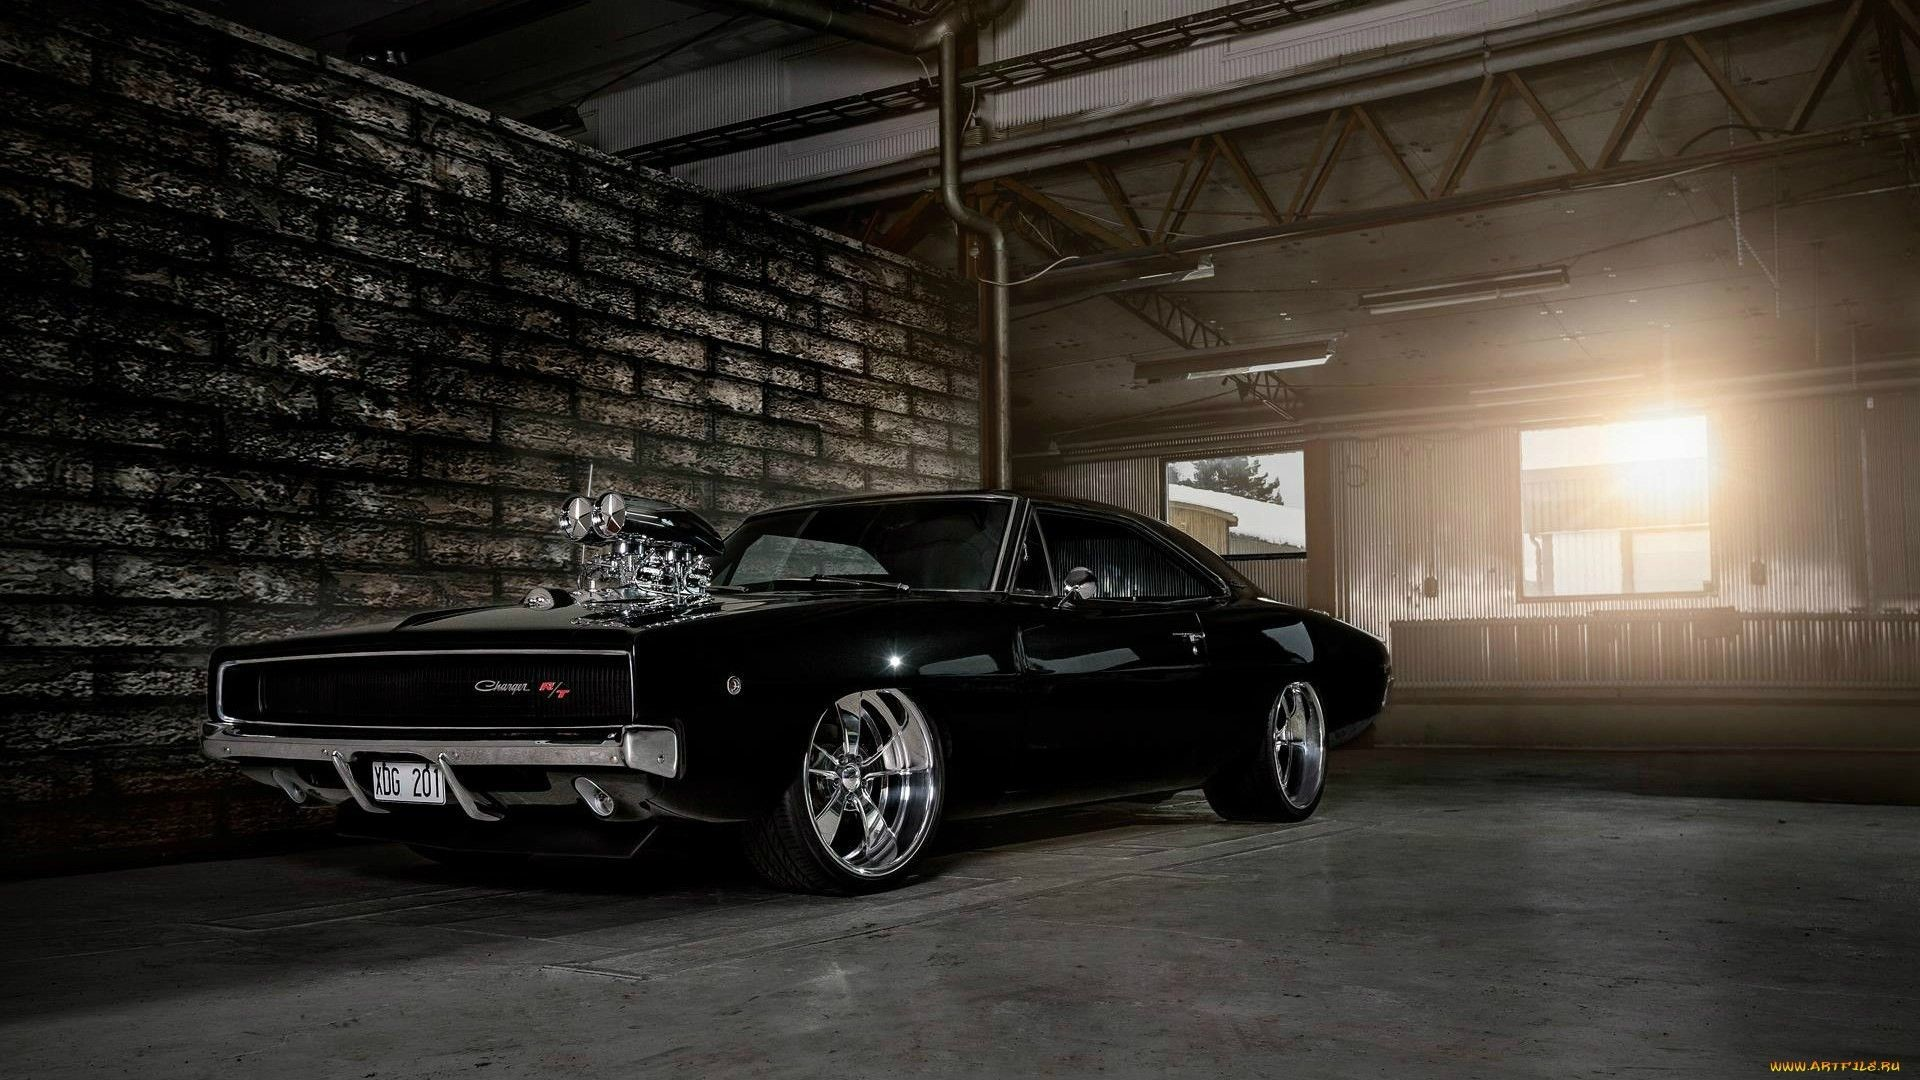 1969 Dodge Charger Wallpaper Wallpapertag